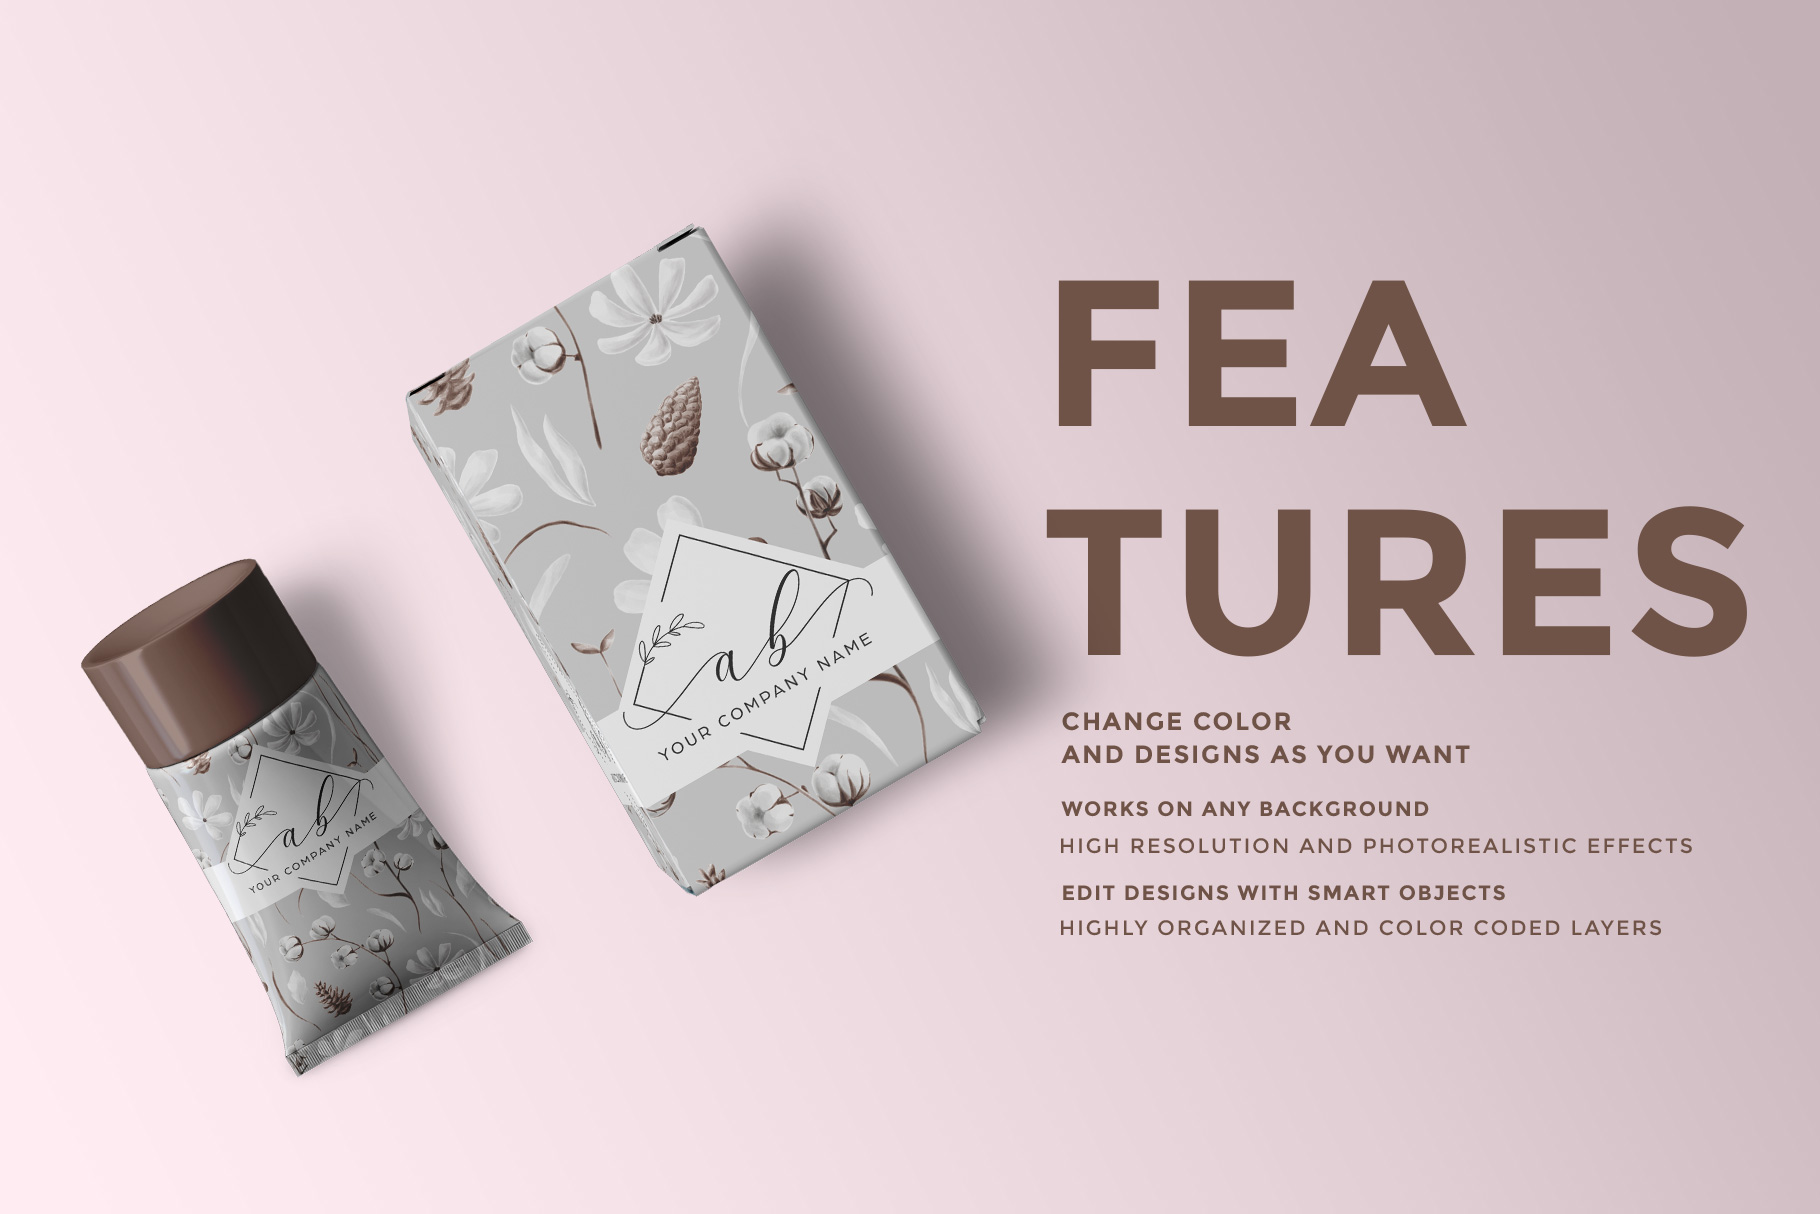 features of the top view cosmetic tube packaging mockup